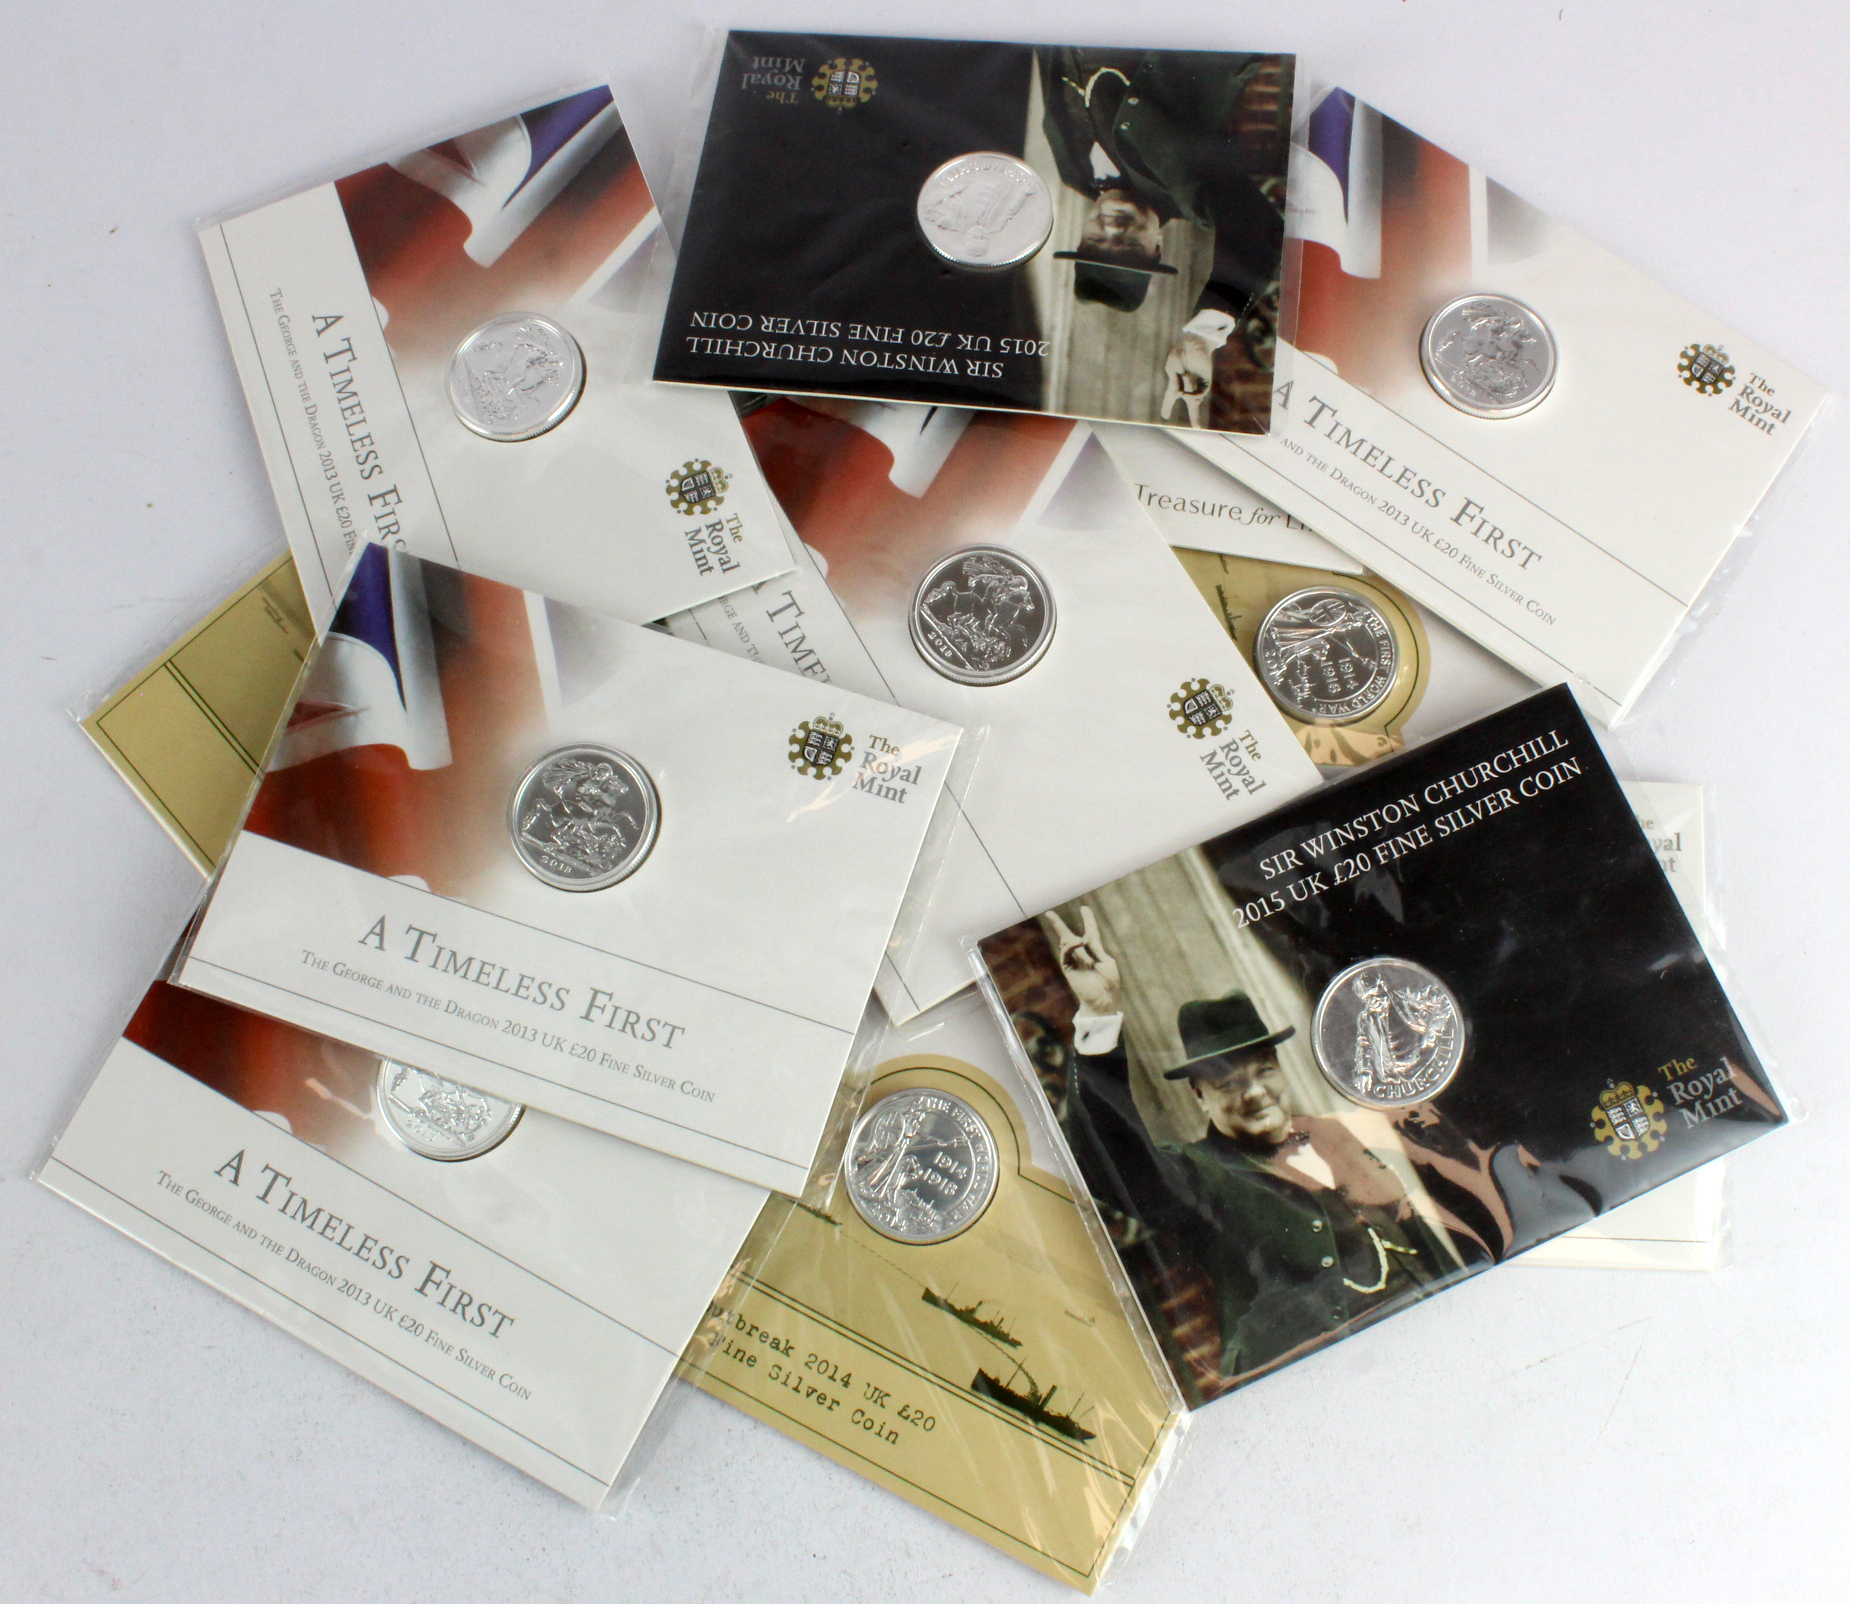 GB Royal Mint silver £20 coins (13) in sealed presentation packs.